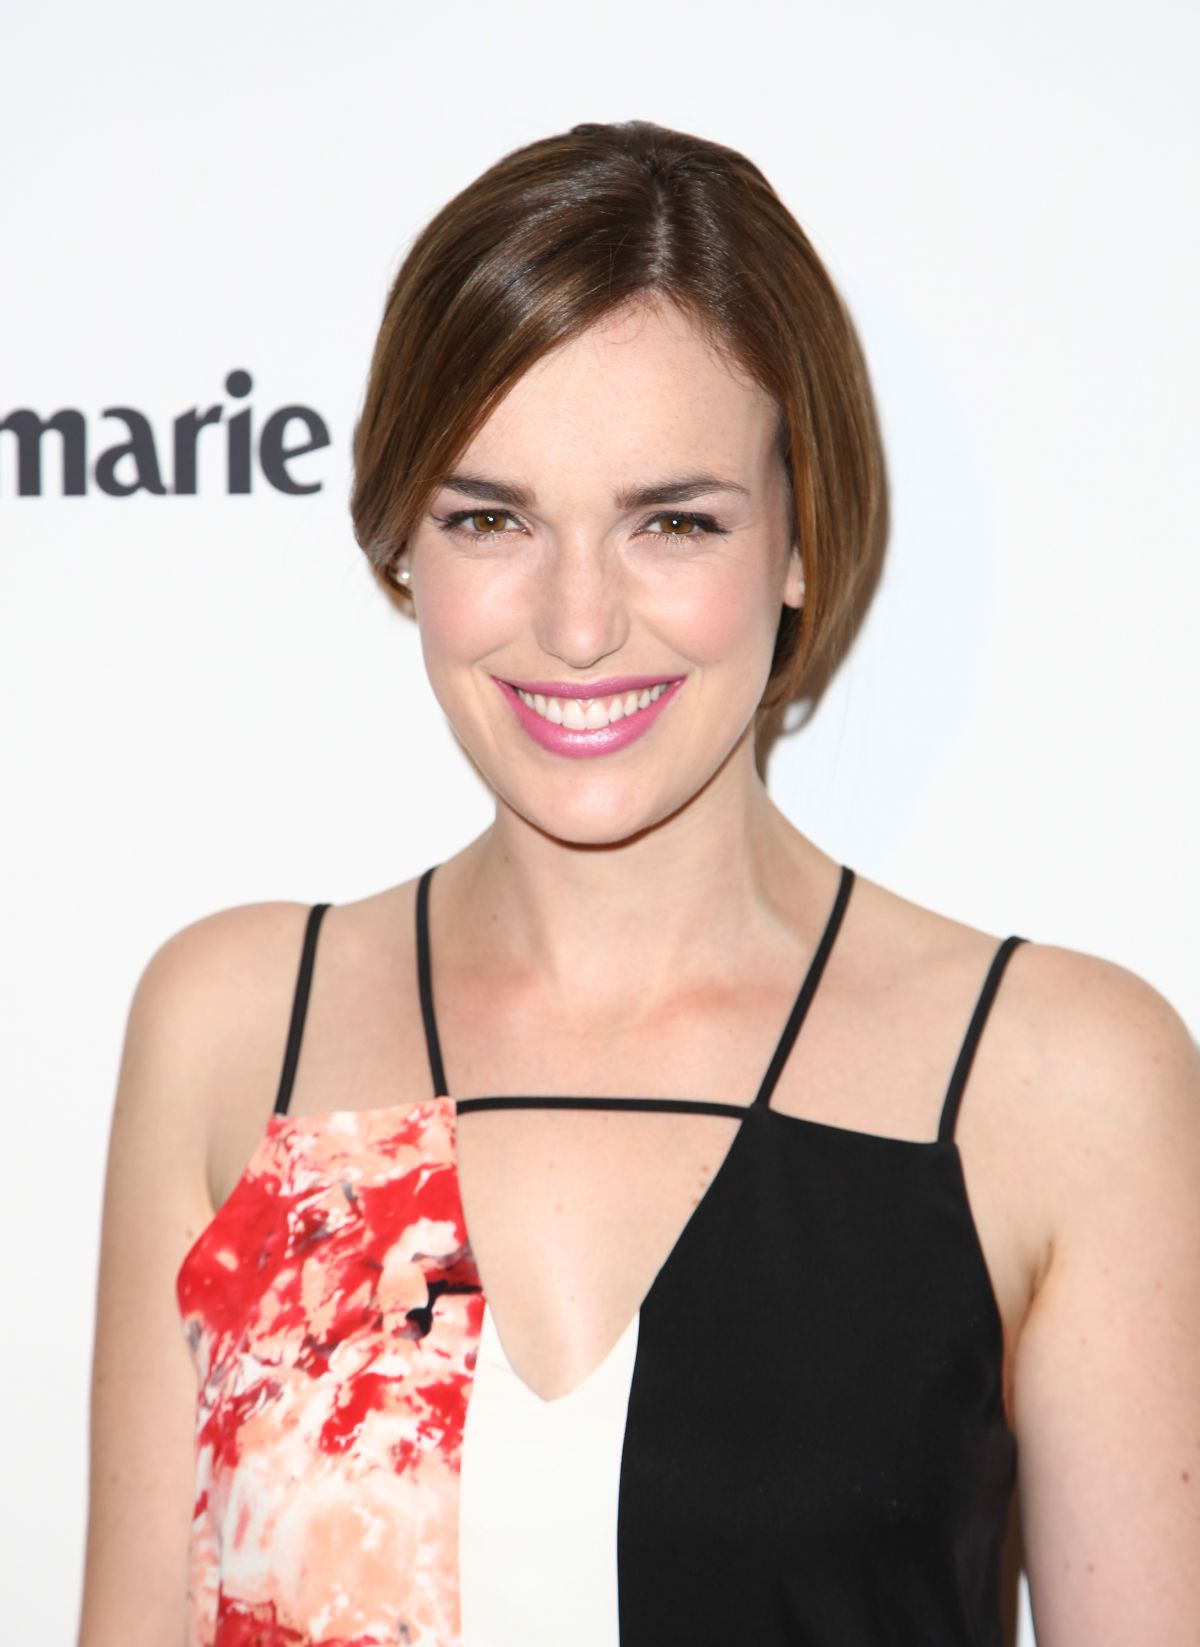 elizabeth henstridge boyfriendelizabeth henstridge gif, elizabeth henstridge photoshoot, elizabeth henstridge tumblr, elizabeth henstridge listal, elizabeth henstridge site, elizabeth henstridge fan, elizabeth henstridge fansite, elizabeth henstridge gallery, elizabeth henstridge movie list, elizabeth henstridge danielle panabaker, elizabeth henstridge looks like, elizabeth henstridge hollyoaks, elizabeth henstridge instagram, elizabeth henstridge photo gallery, elizabeth henstridge twitter, elizabeth henstridge boyfriend, elizabeth henstridge wiki, elizabeth henstridge and zachary abel